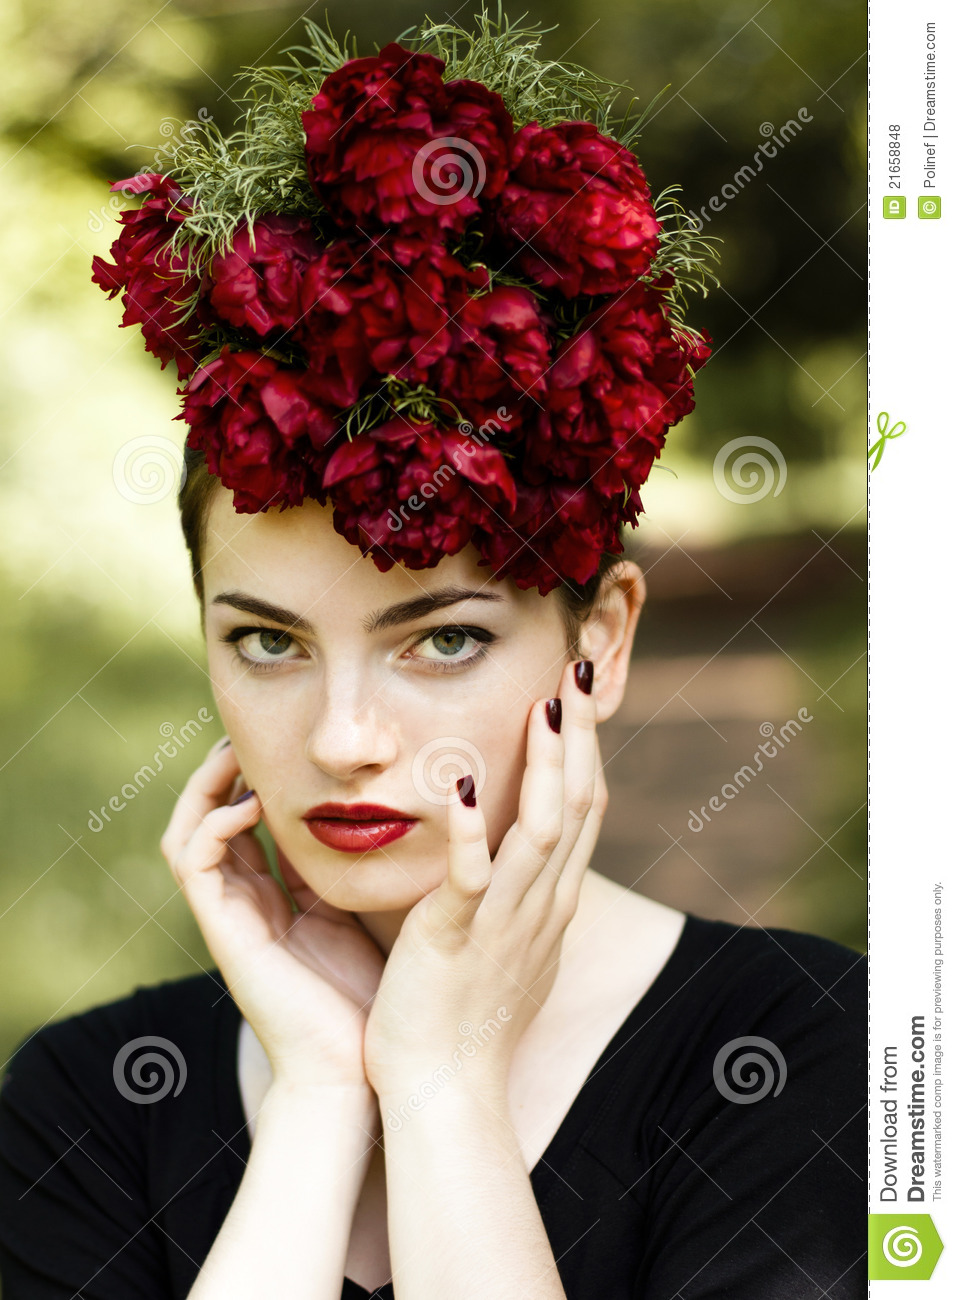 Woman With Red Lipstick And Flowers On The Head Stock